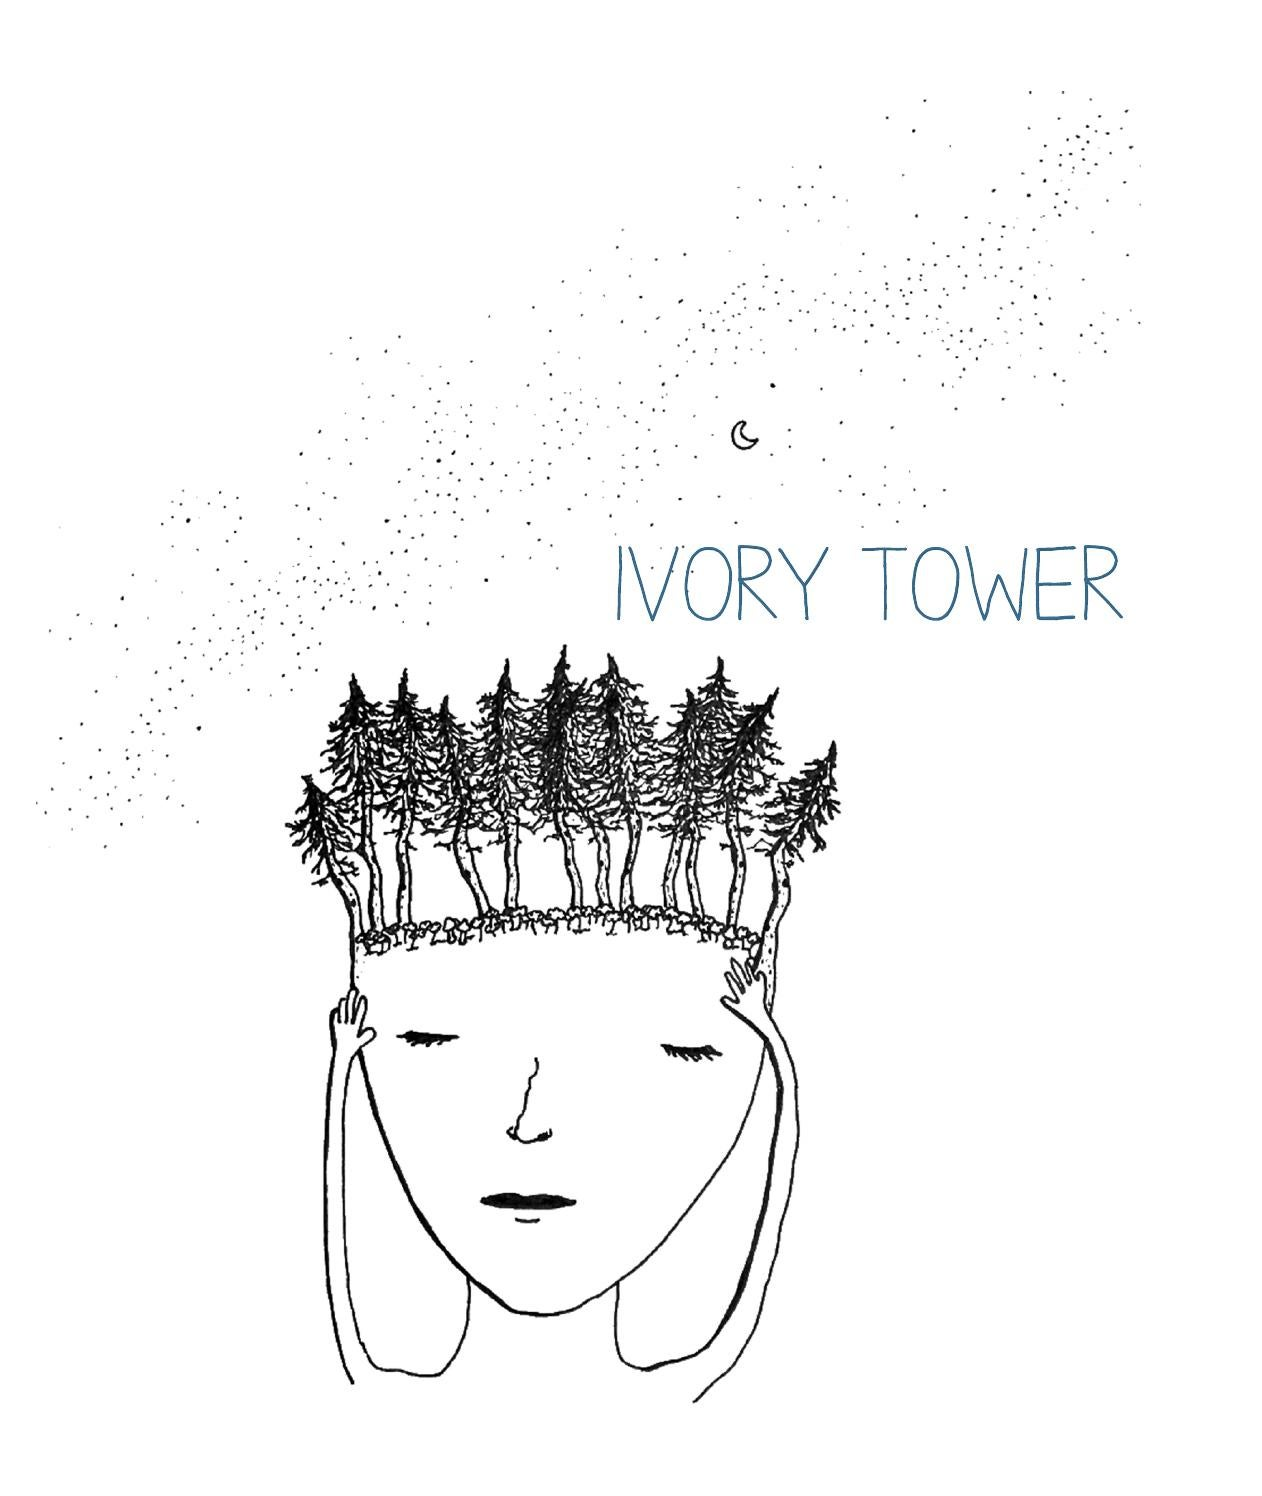 ivory tower 2015 by ivory tower issuu Toddler Pimples in Diaper Area